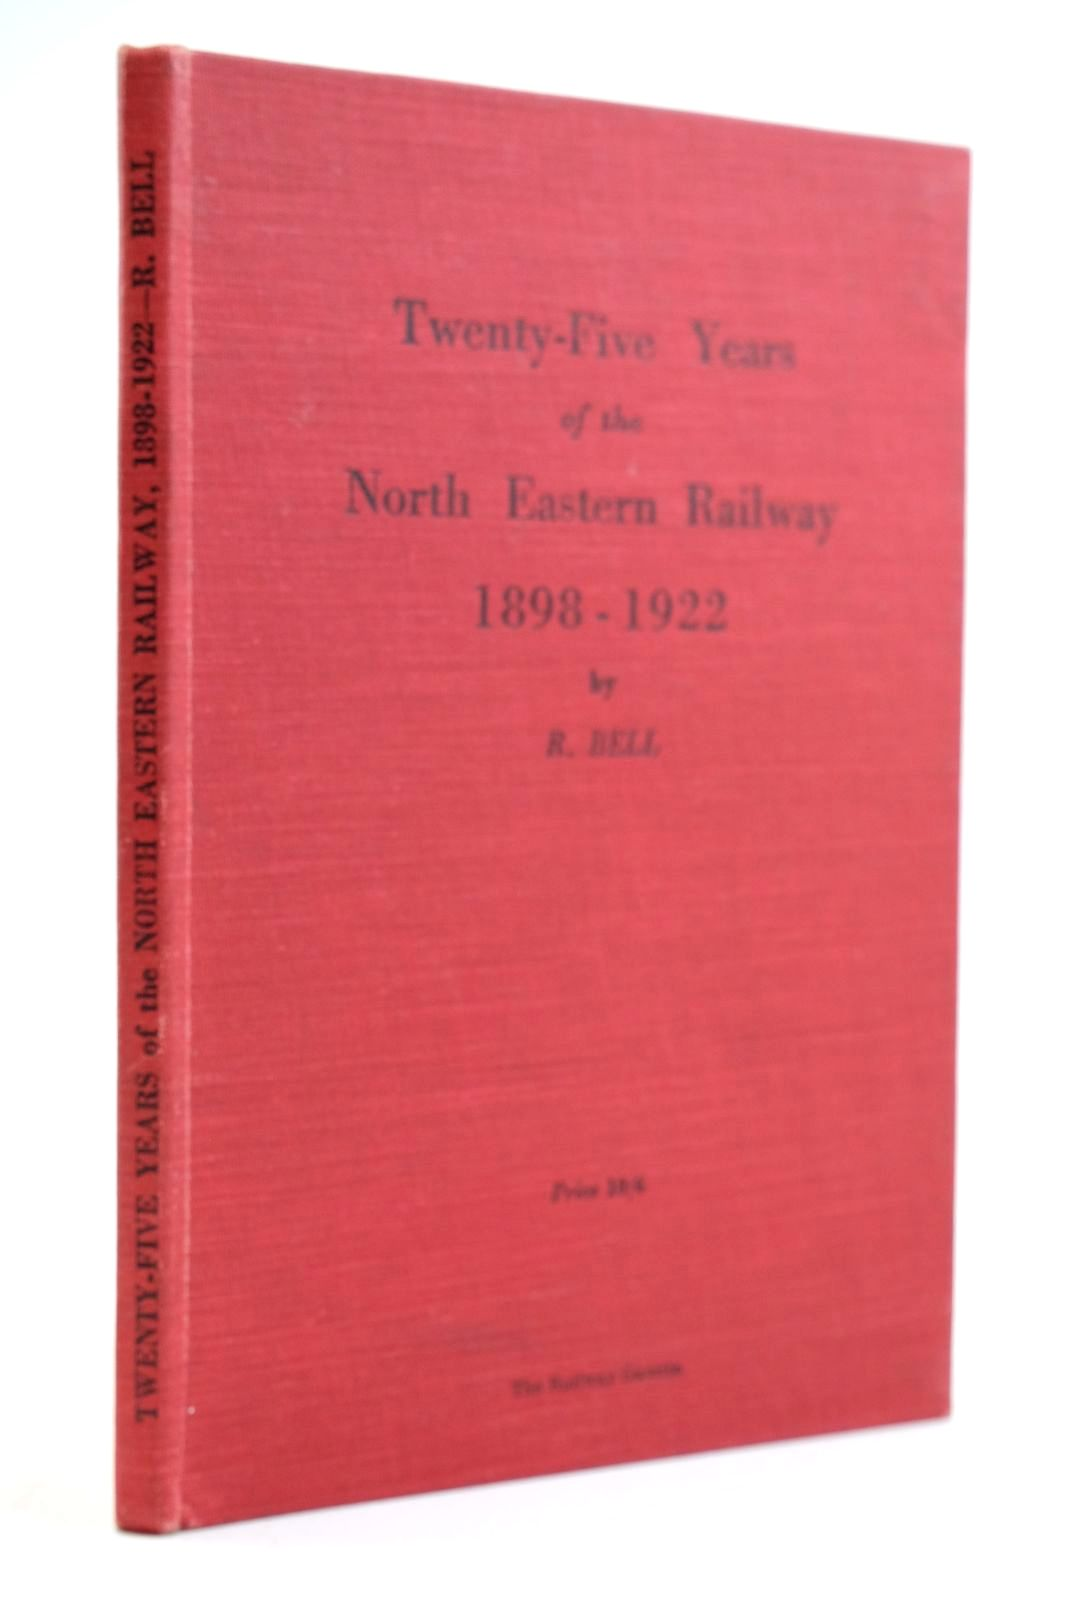 Photo of TWENTY FIVE YEARS OF THE NORTH EASTERN RAILWAY 1898-1922 written by Bell, R. published by The Railway Gazette (STOCK CODE: 2134032)  for sale by Stella & Rose's Books